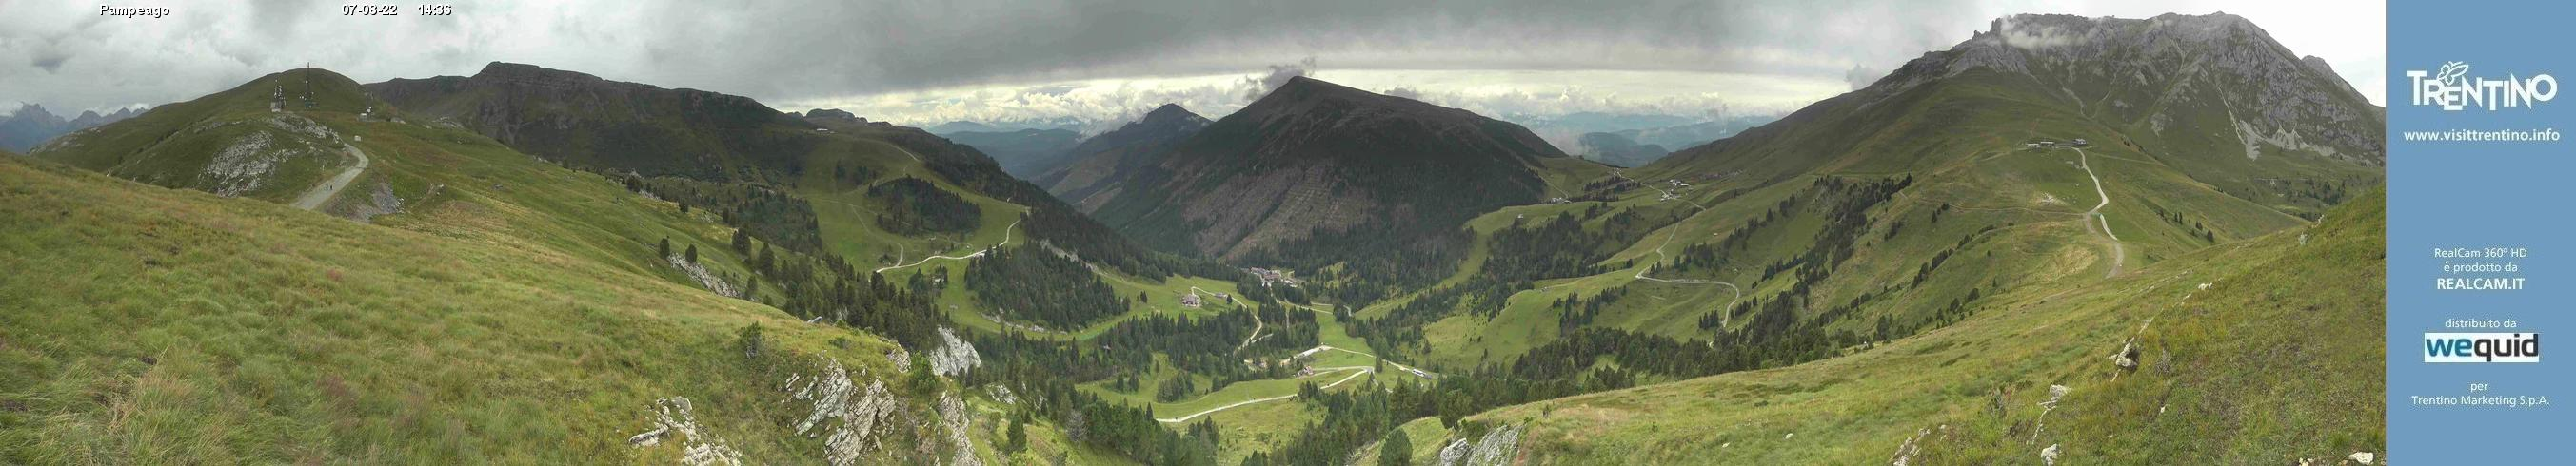 Webcam <br><span> panoramica val di fiemme</span>